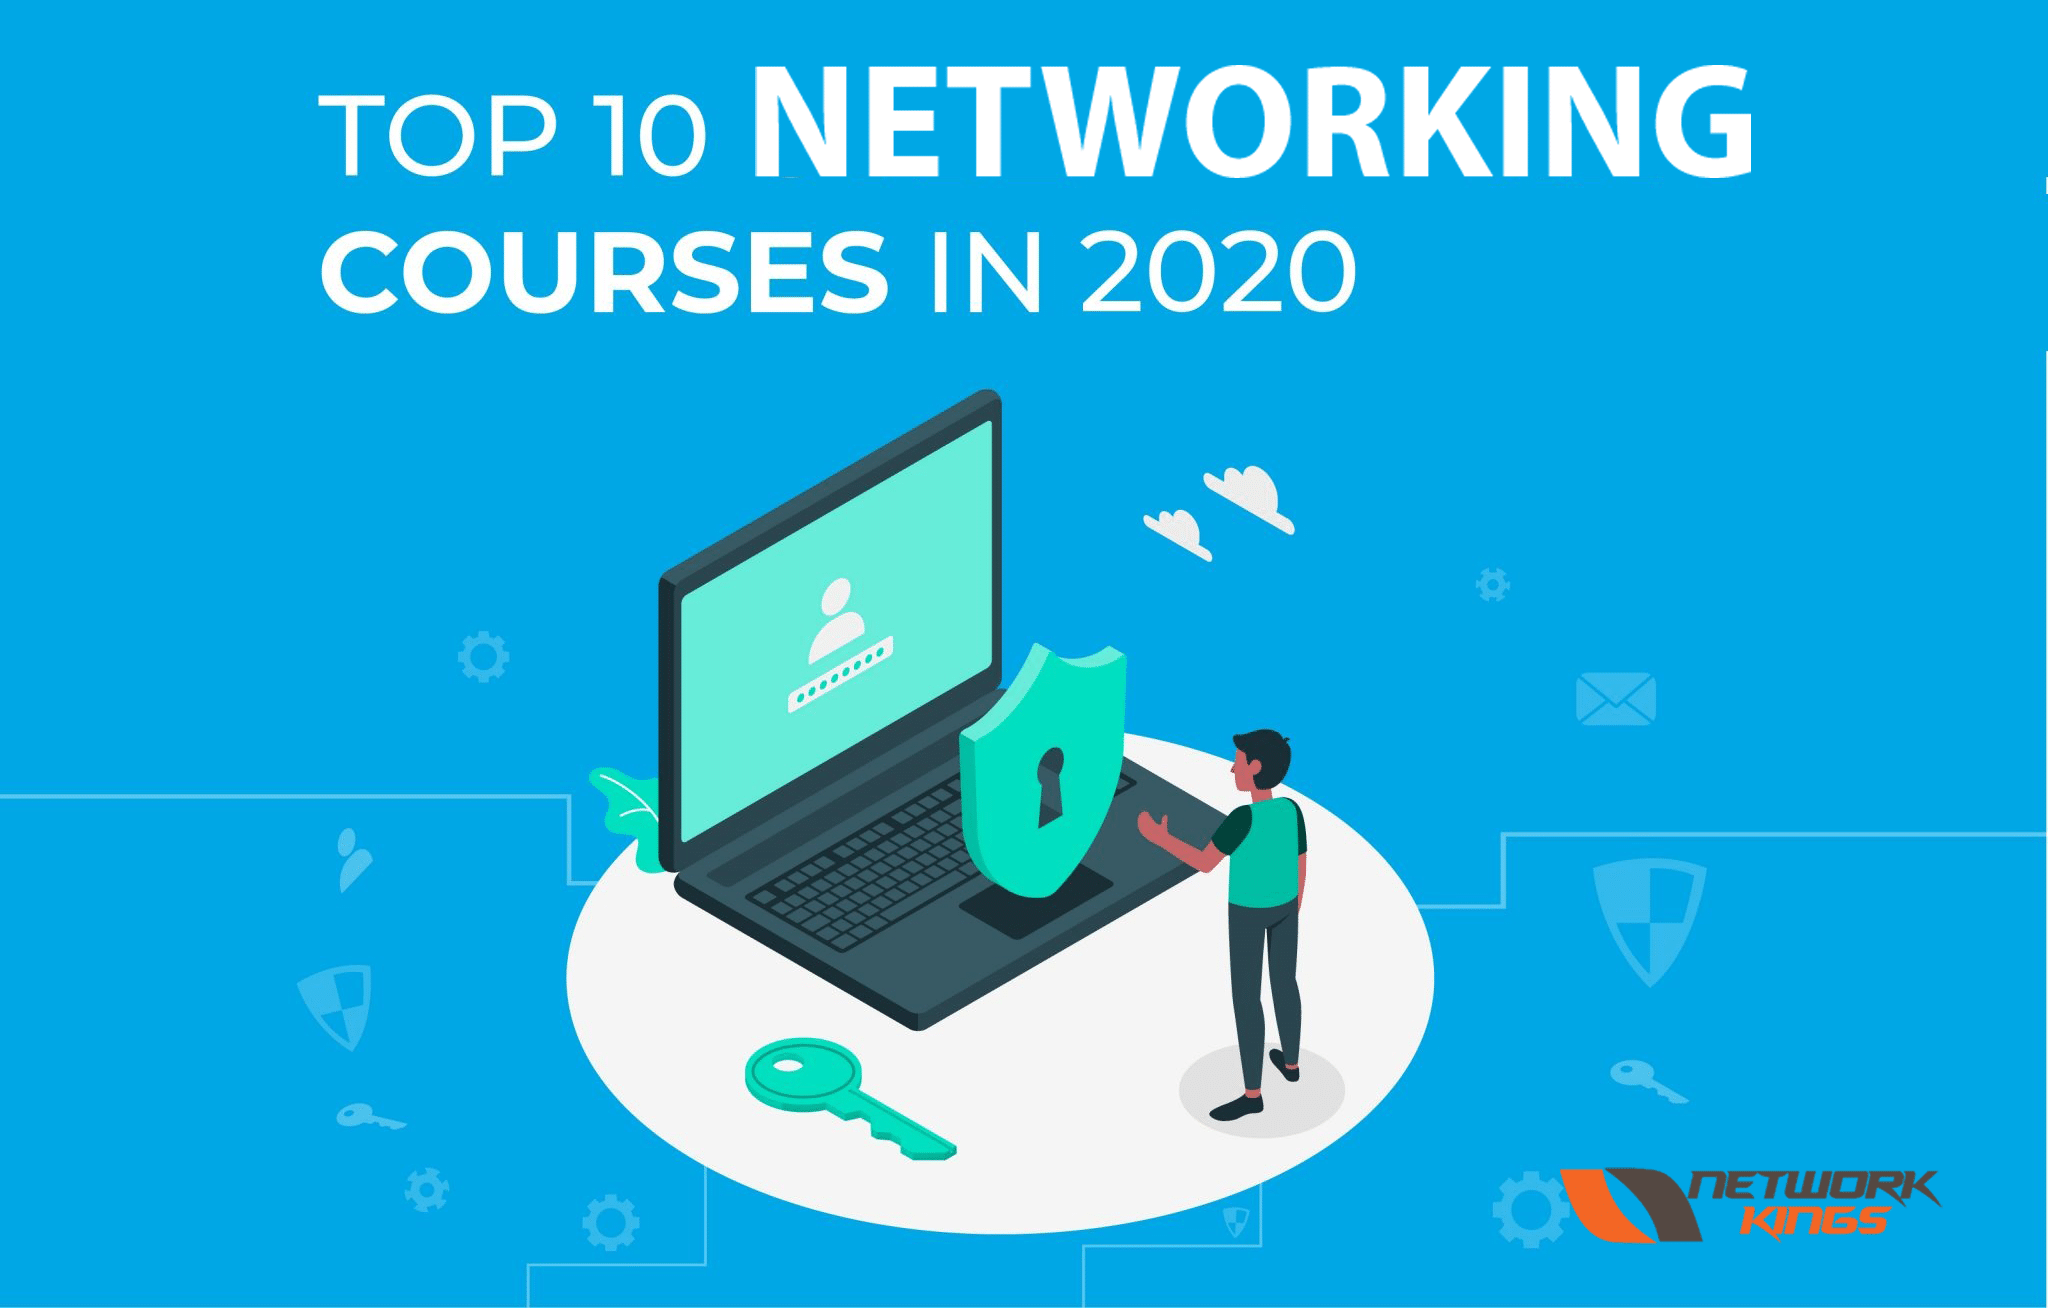 Top 10 Networking Courses